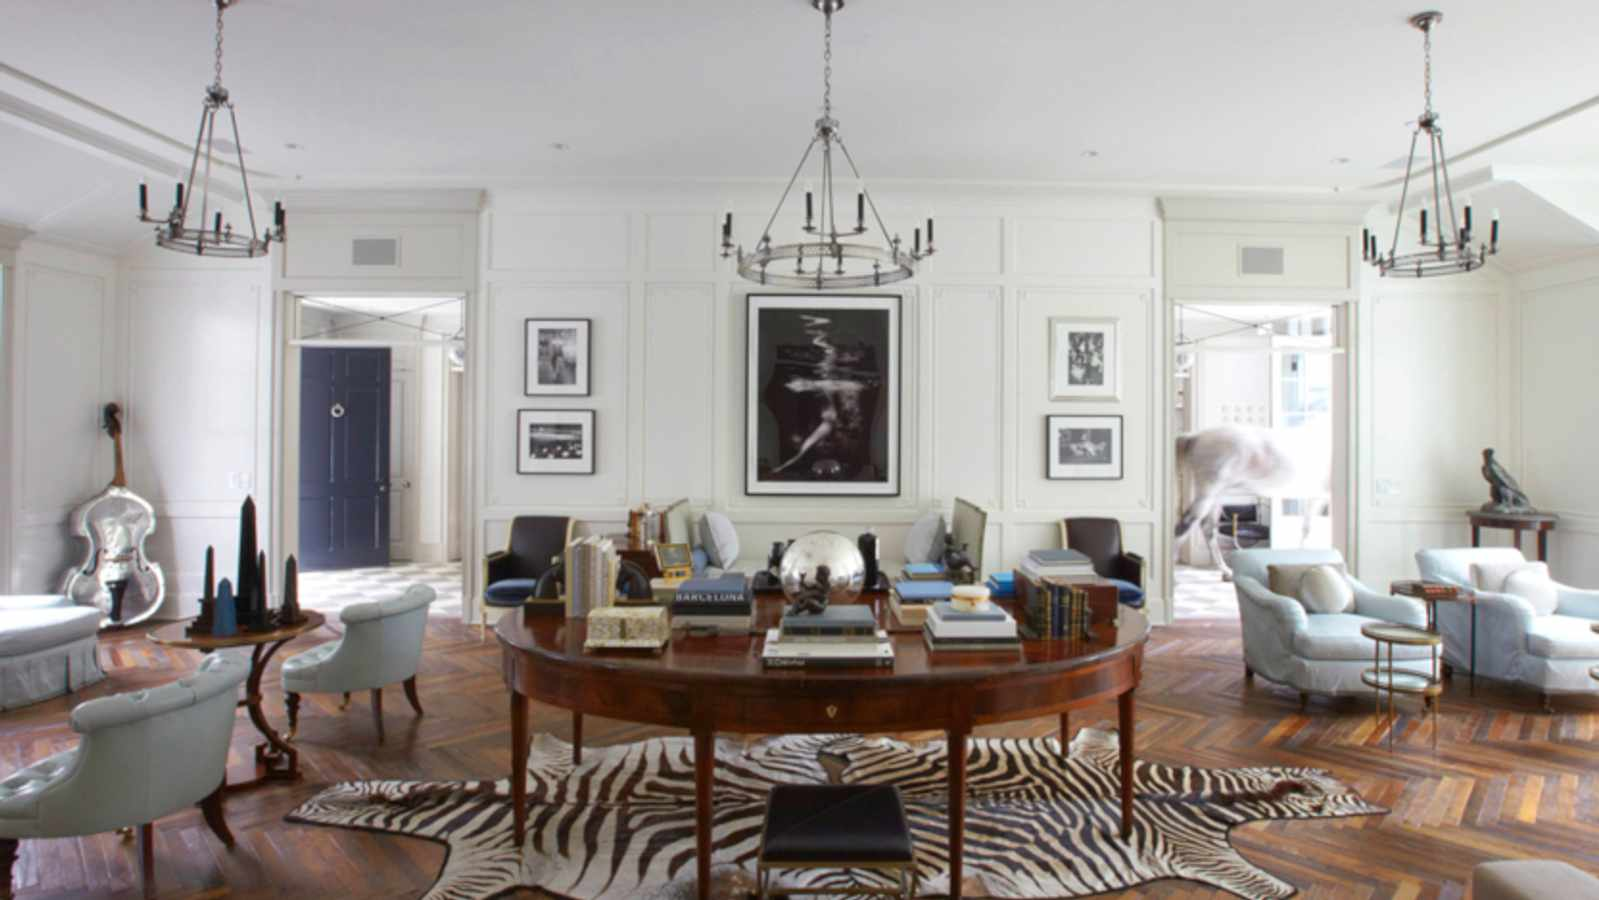 Gwyneth Paltrow's interior designer shares the secret to a stylish home